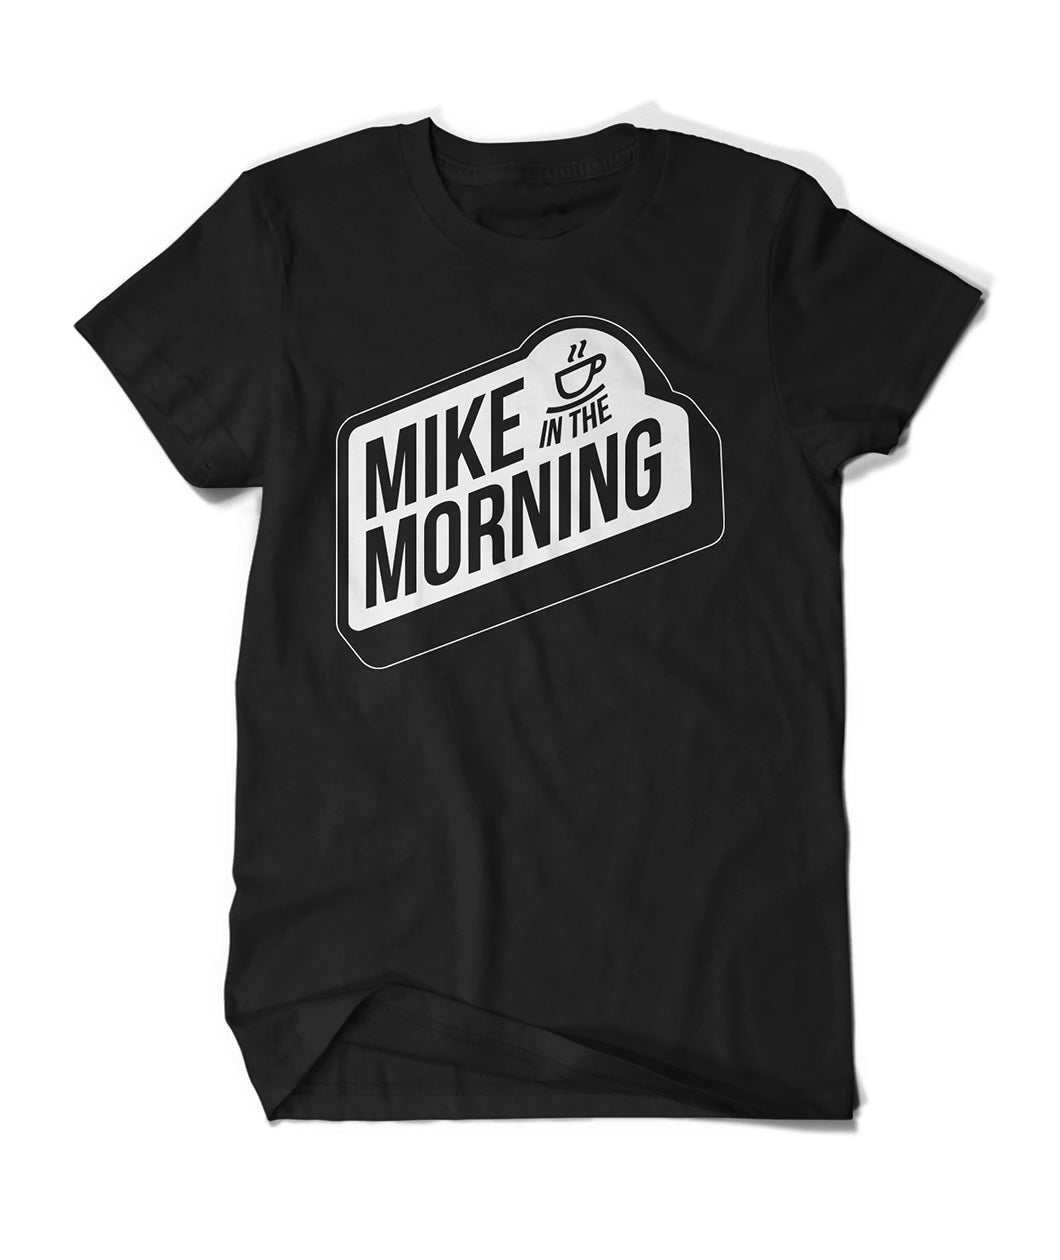 Mike In The Morning (Black) Shirt